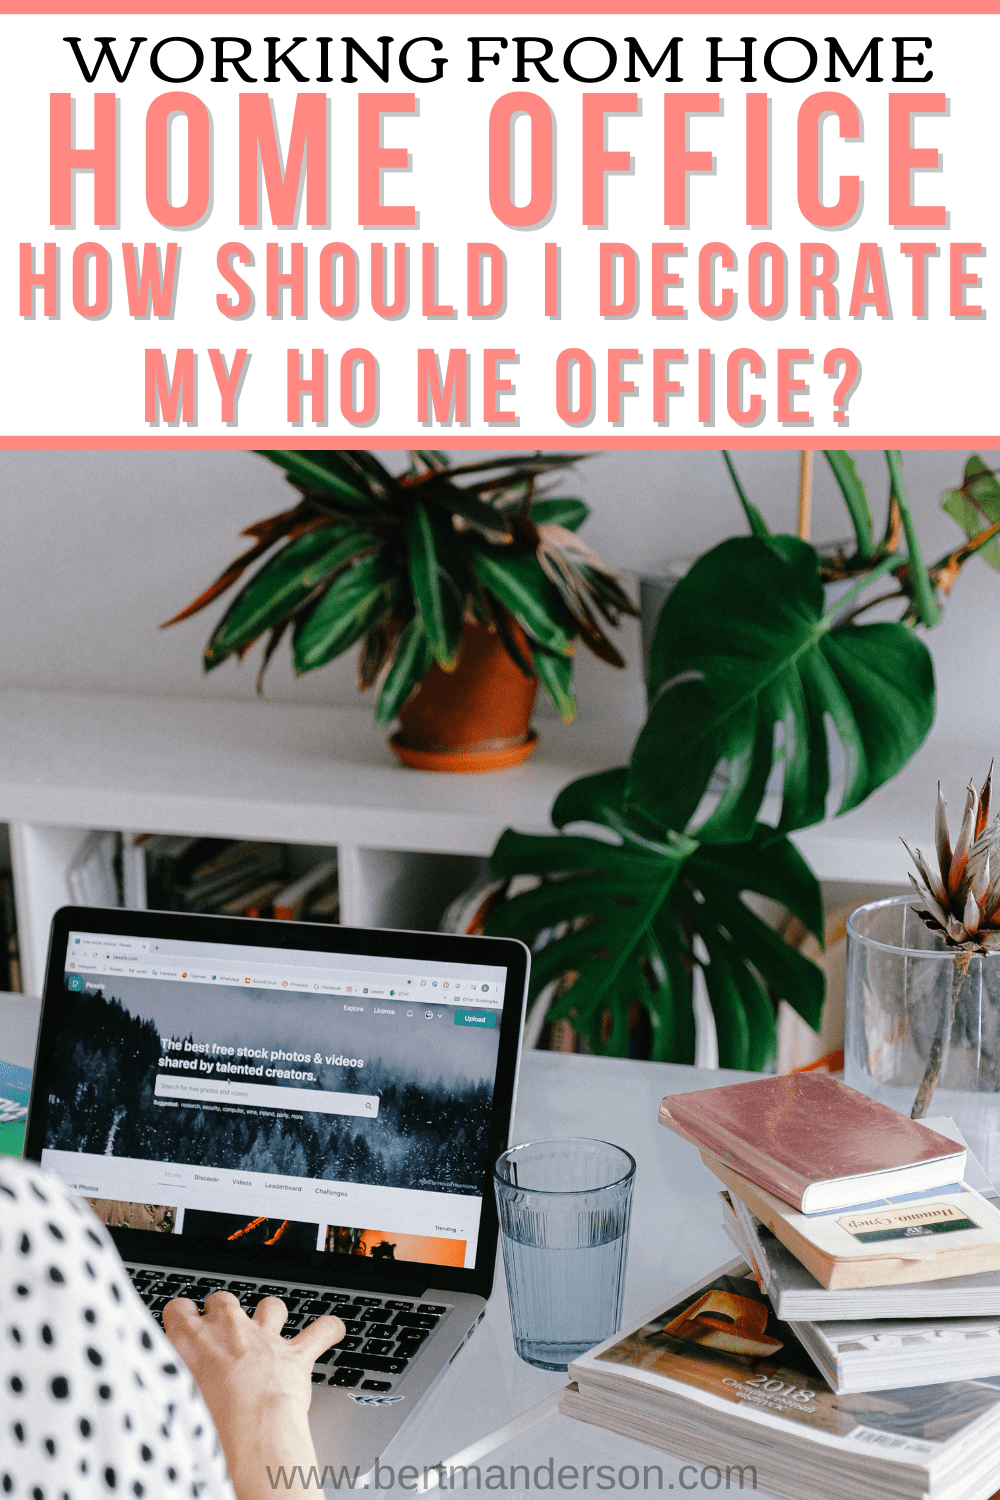 How can I decorate my home office now that I'm working from home? #workfromhome #homeoffice #homeofficedecor